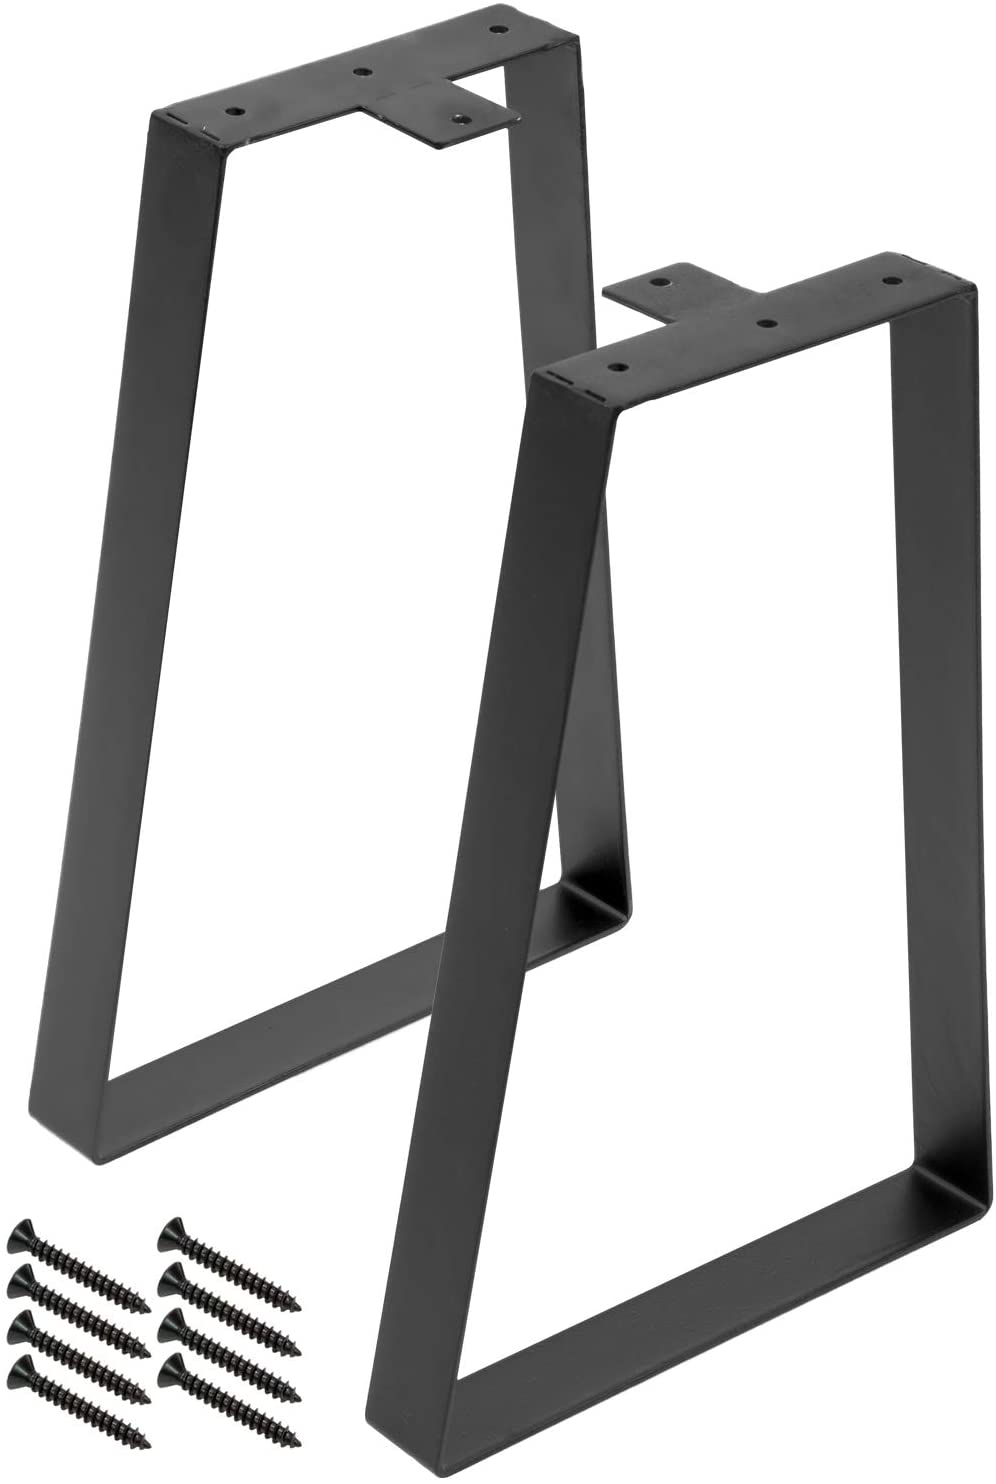 """Sorbus Trapezoid Table Legs, 16"""" Tall Furniture Legs for DIY Coffee Table, Desk, Bench, Modern Mid-Century, Heavy Duty Black Metal, Set of 2 (16 Inch)"""